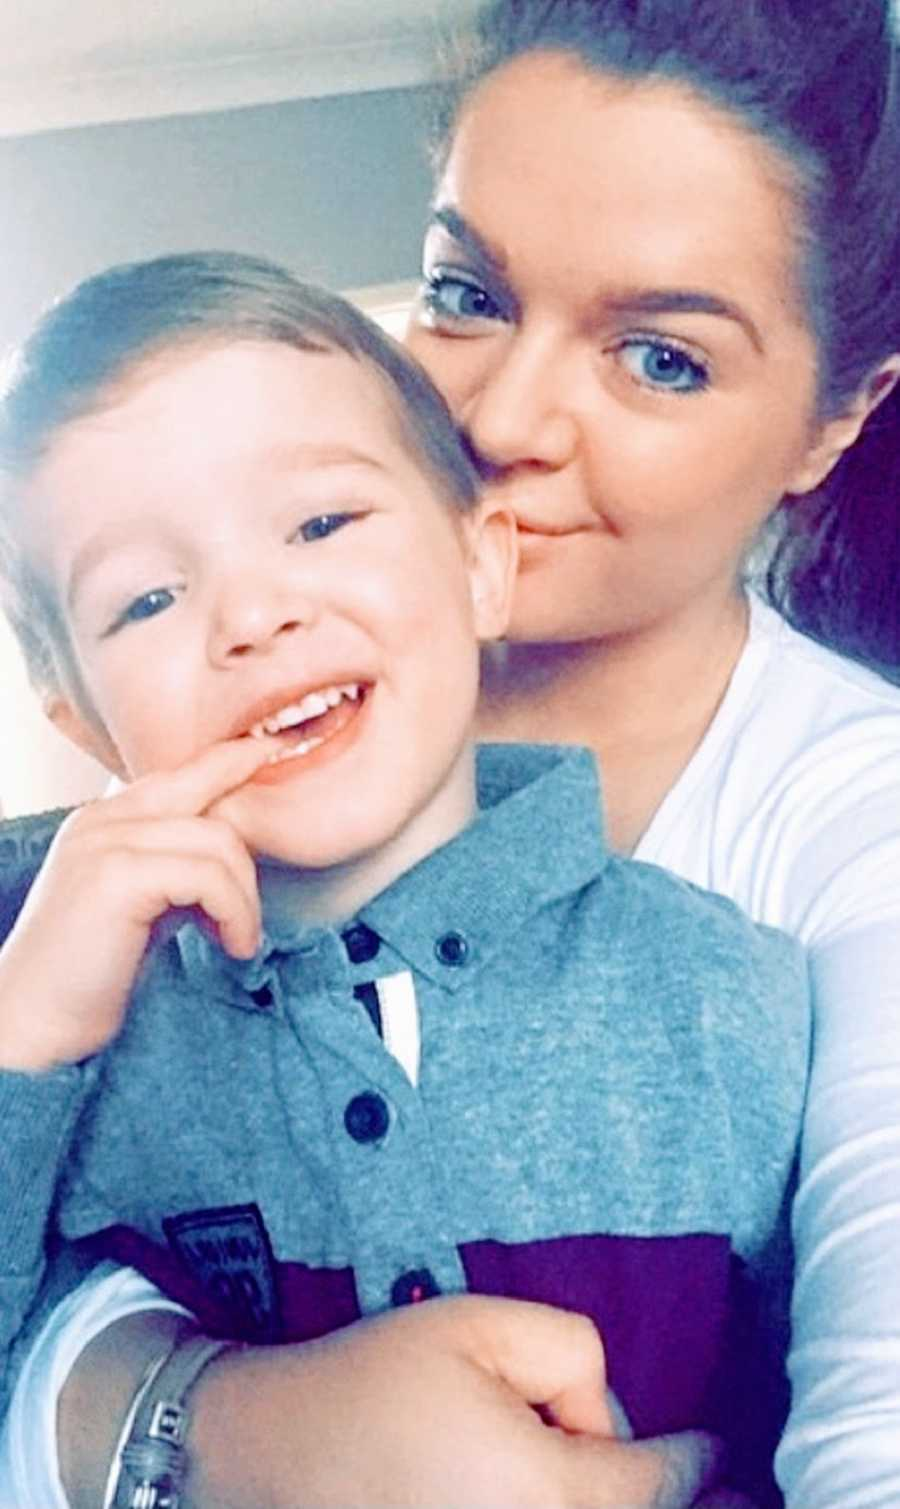 A woman with chronic illness holds her son